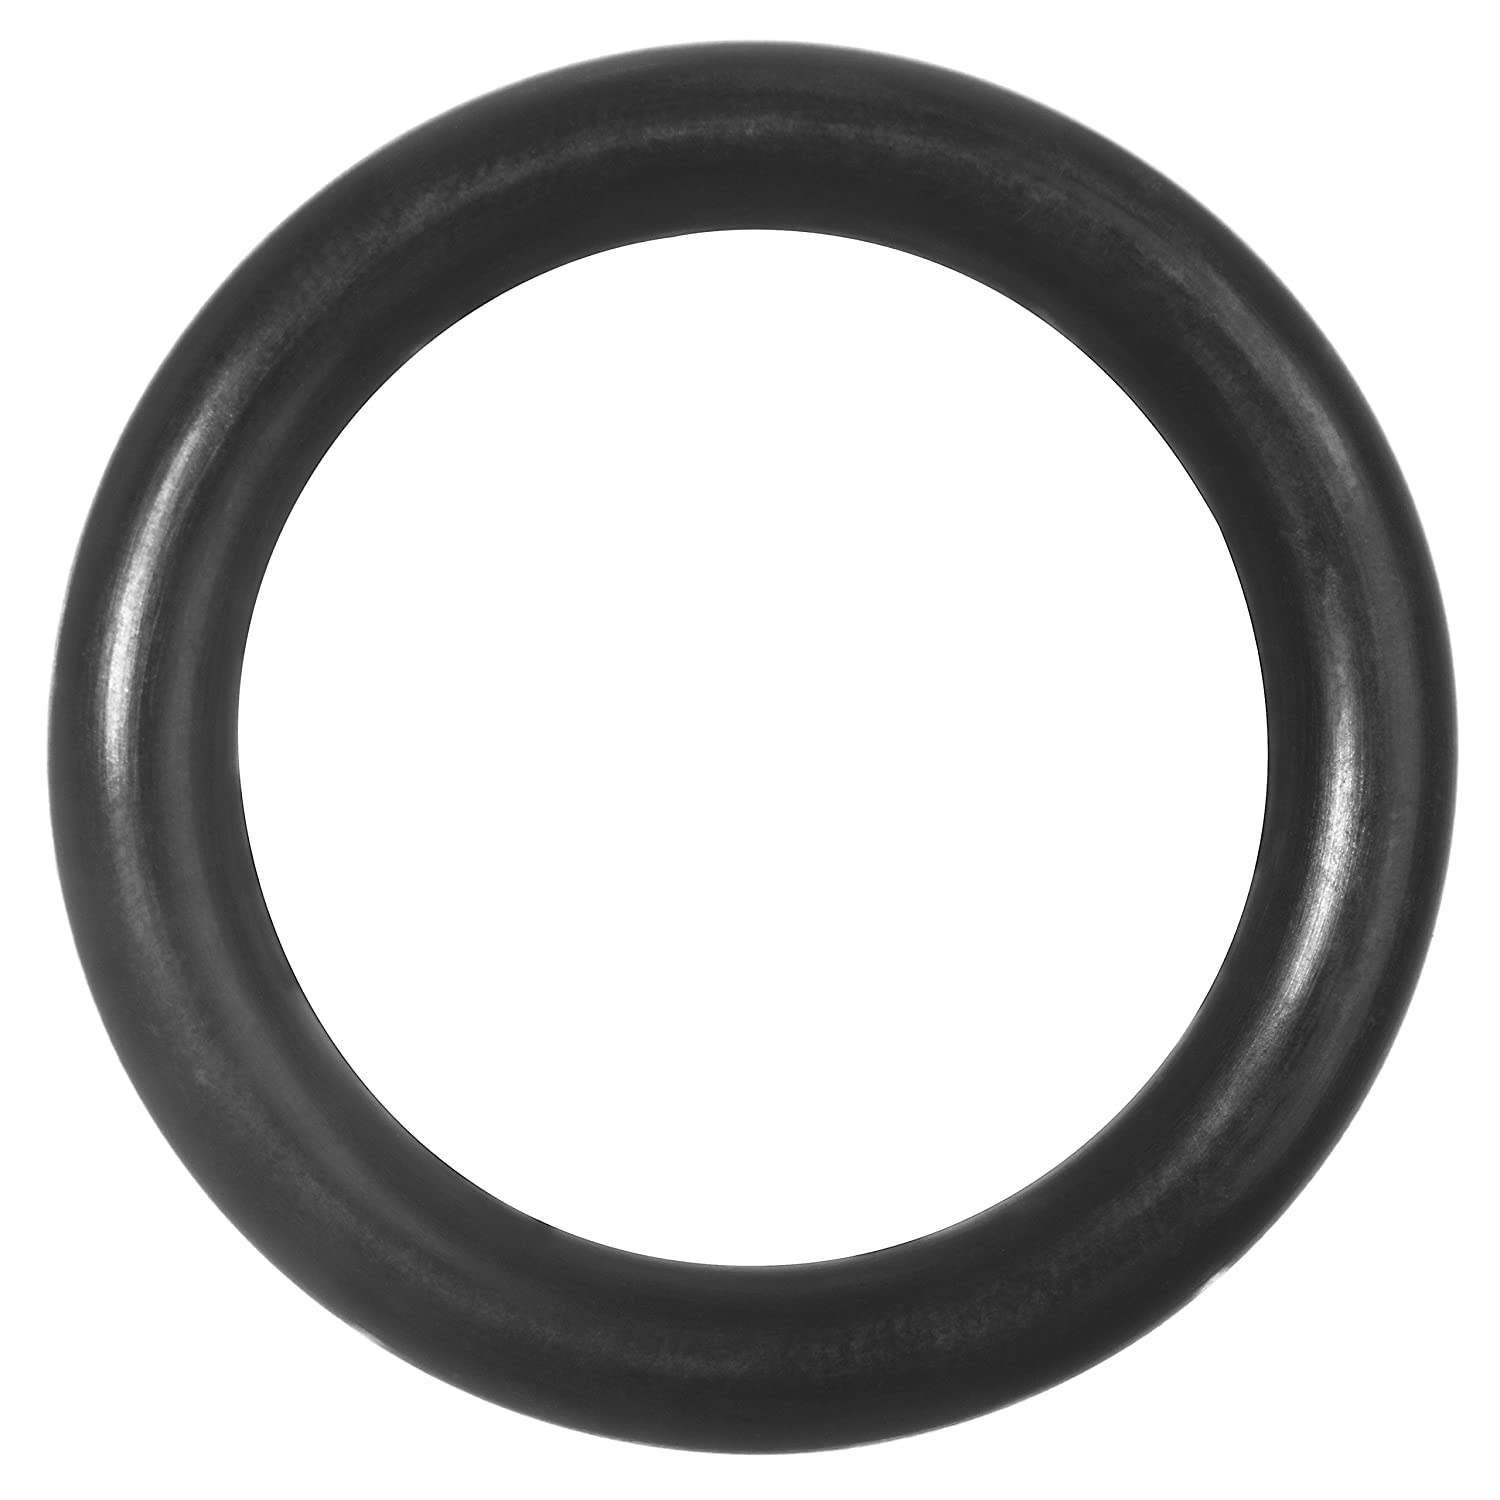 USA Sealing Inc Pack of 100-Hard Buna-N O-Ring Dash 030